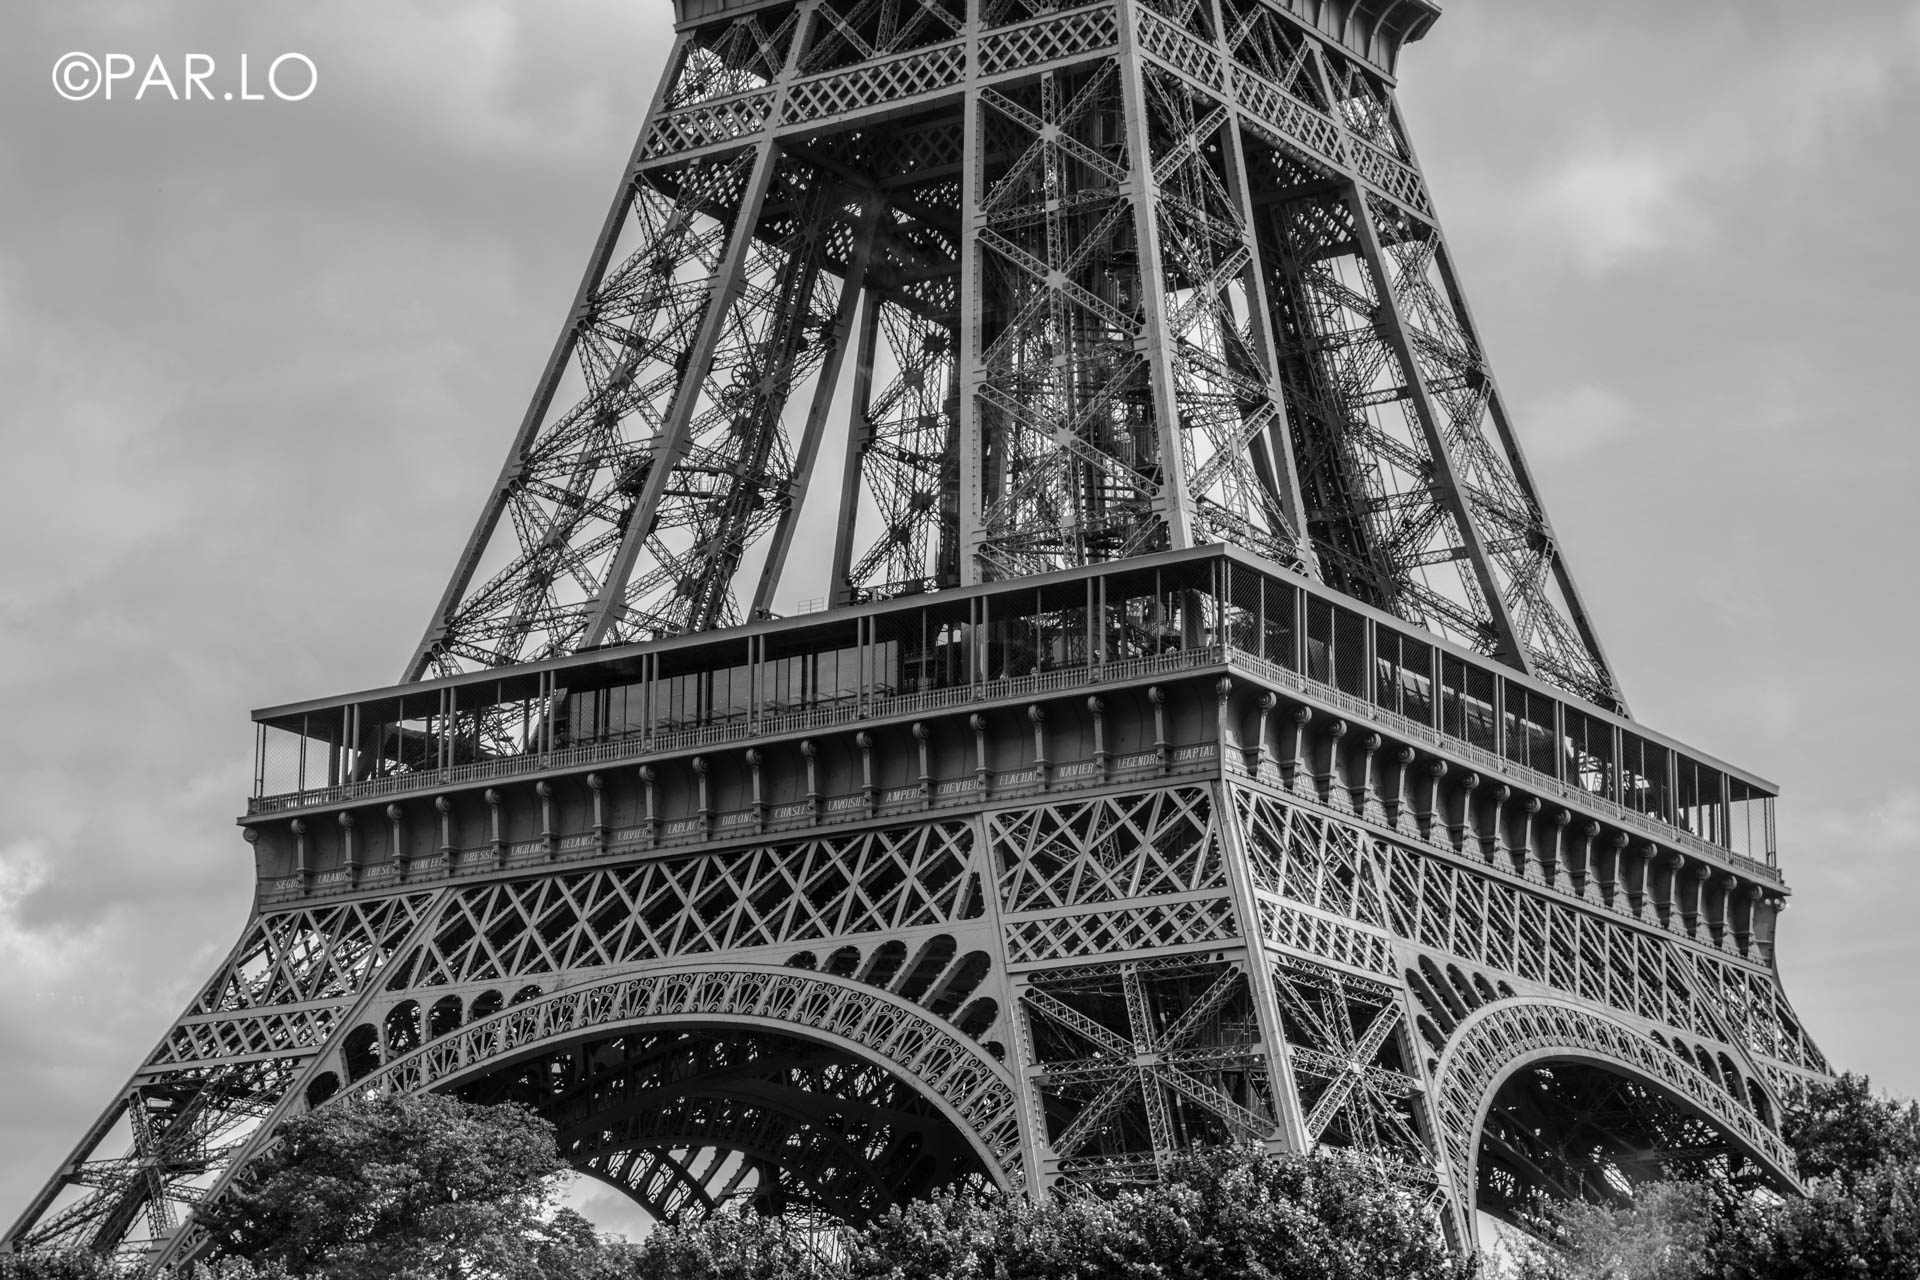 Eiffel Tower Close Up, Paris.